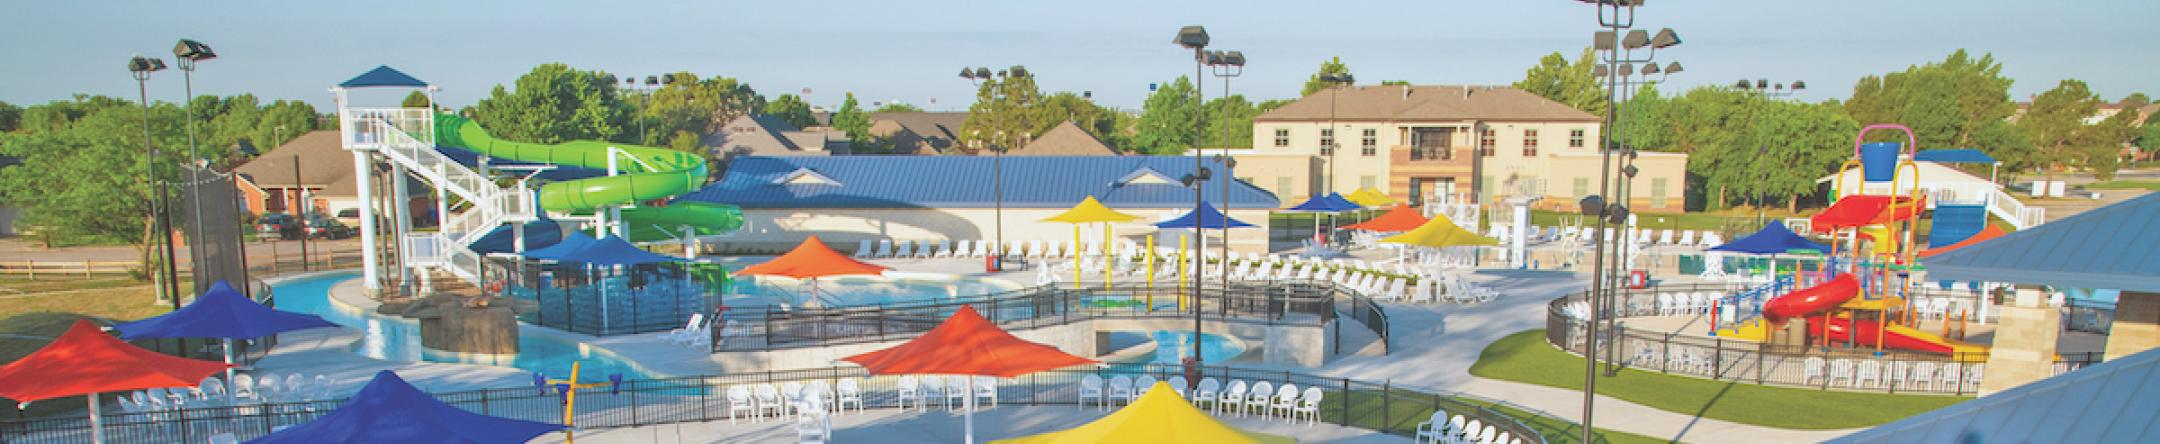 Westwood Pool Overview